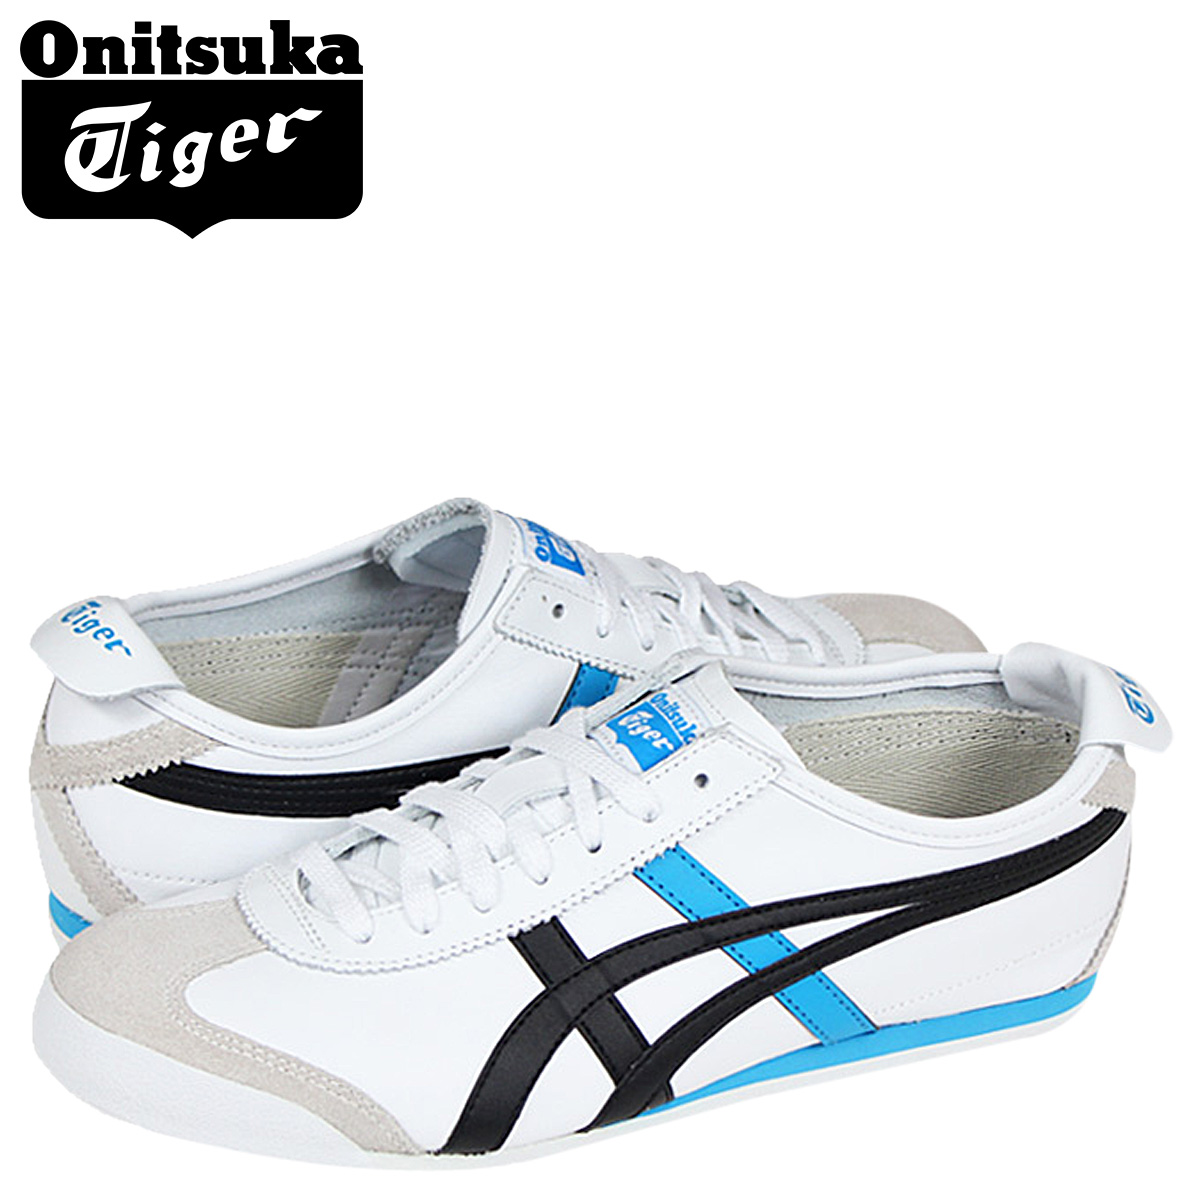 look for 22cad 2b817 66 66 Onitsuka tiger Asics Onitsuka Tiger asics MEXICO THL7C2-0152 sneakers  Mexico suede X leather men suede cloth white [1/31 Shinnyu load] ...